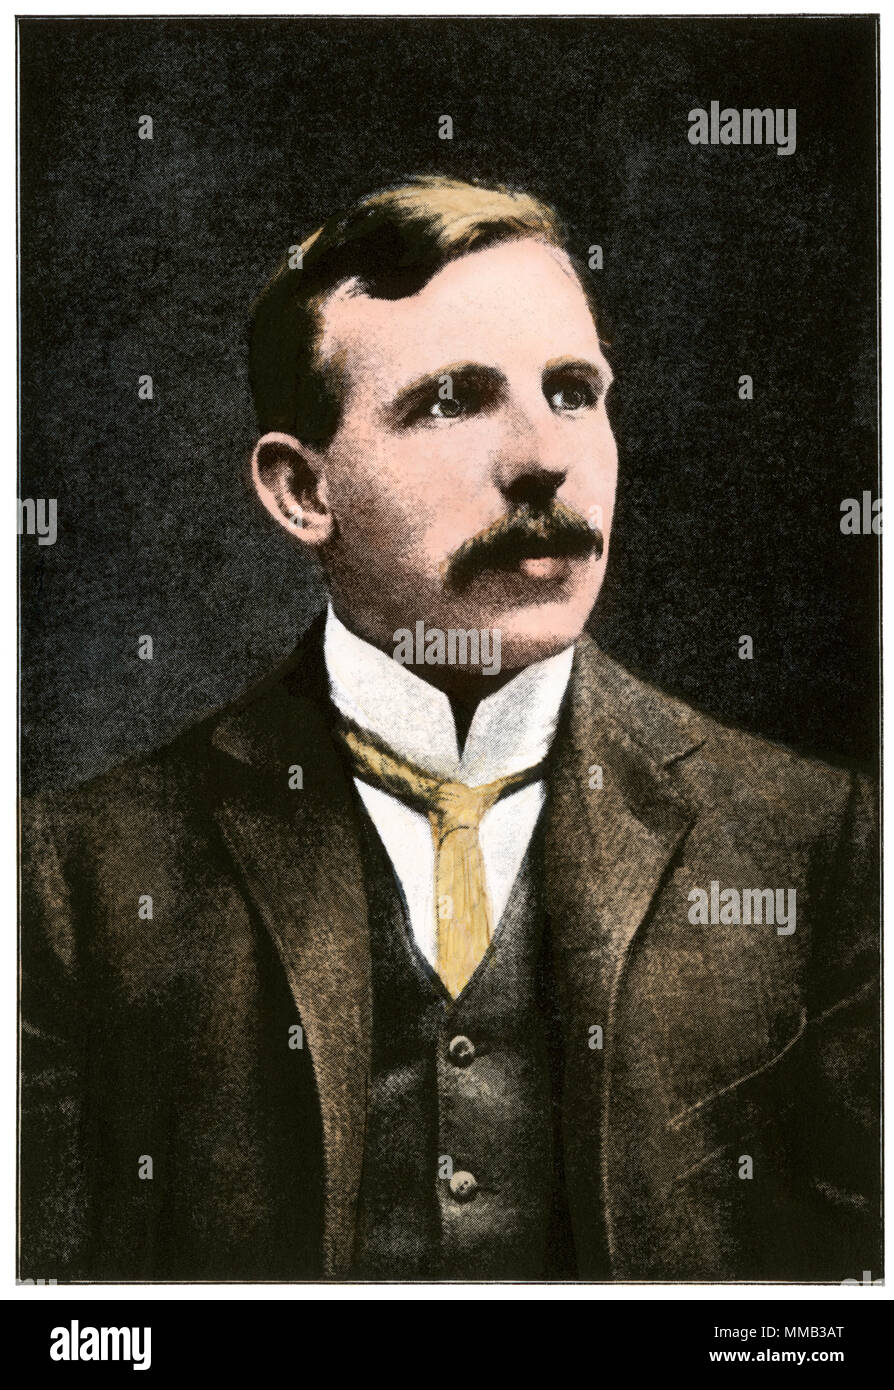 Ernest Rutherford, Nobel Prize winner in Chemistry, 1908. Hand-colored halftone of a photograph - Stock Image